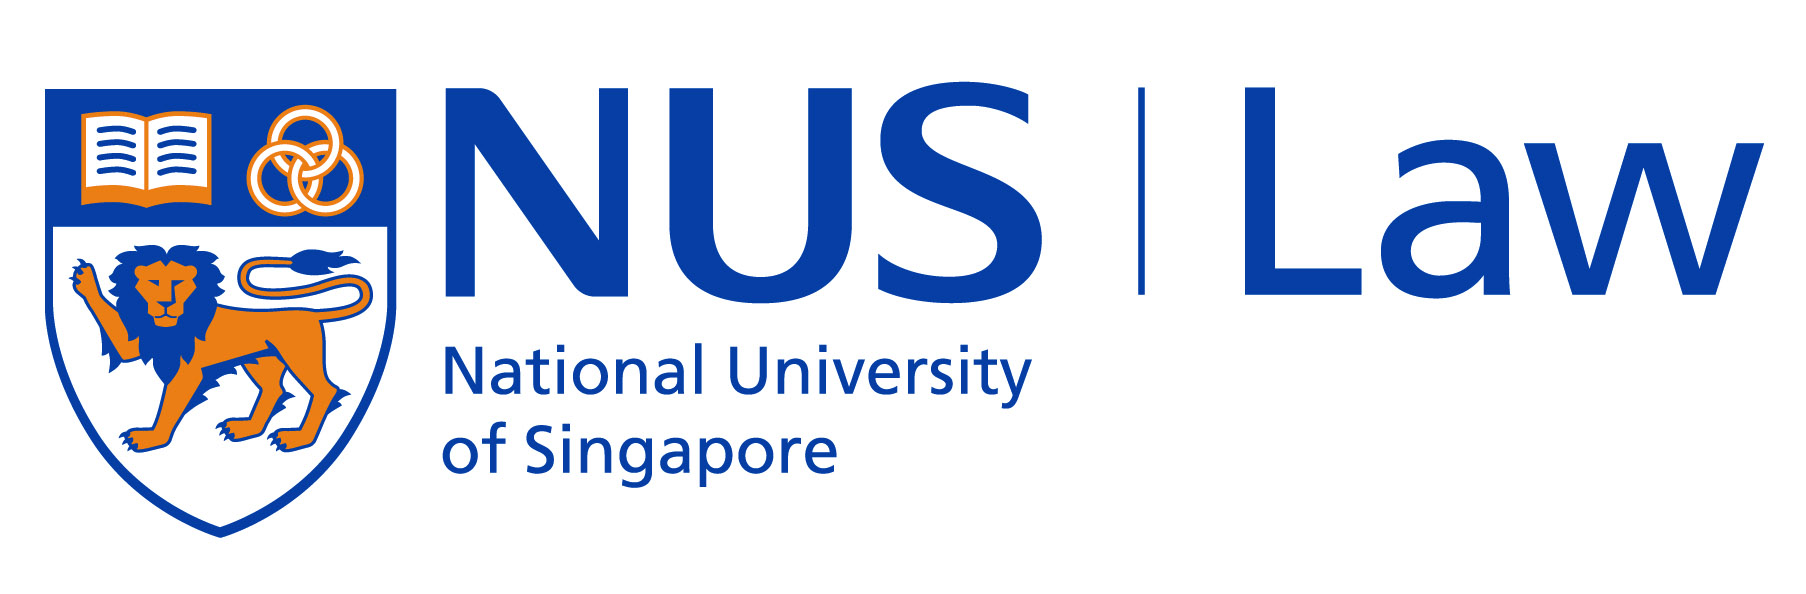 nus apply online coursework Home apply to nus local applicants : application forms & procedures (nsf) who have a course reserved in nus and wish to apply for a change of course.